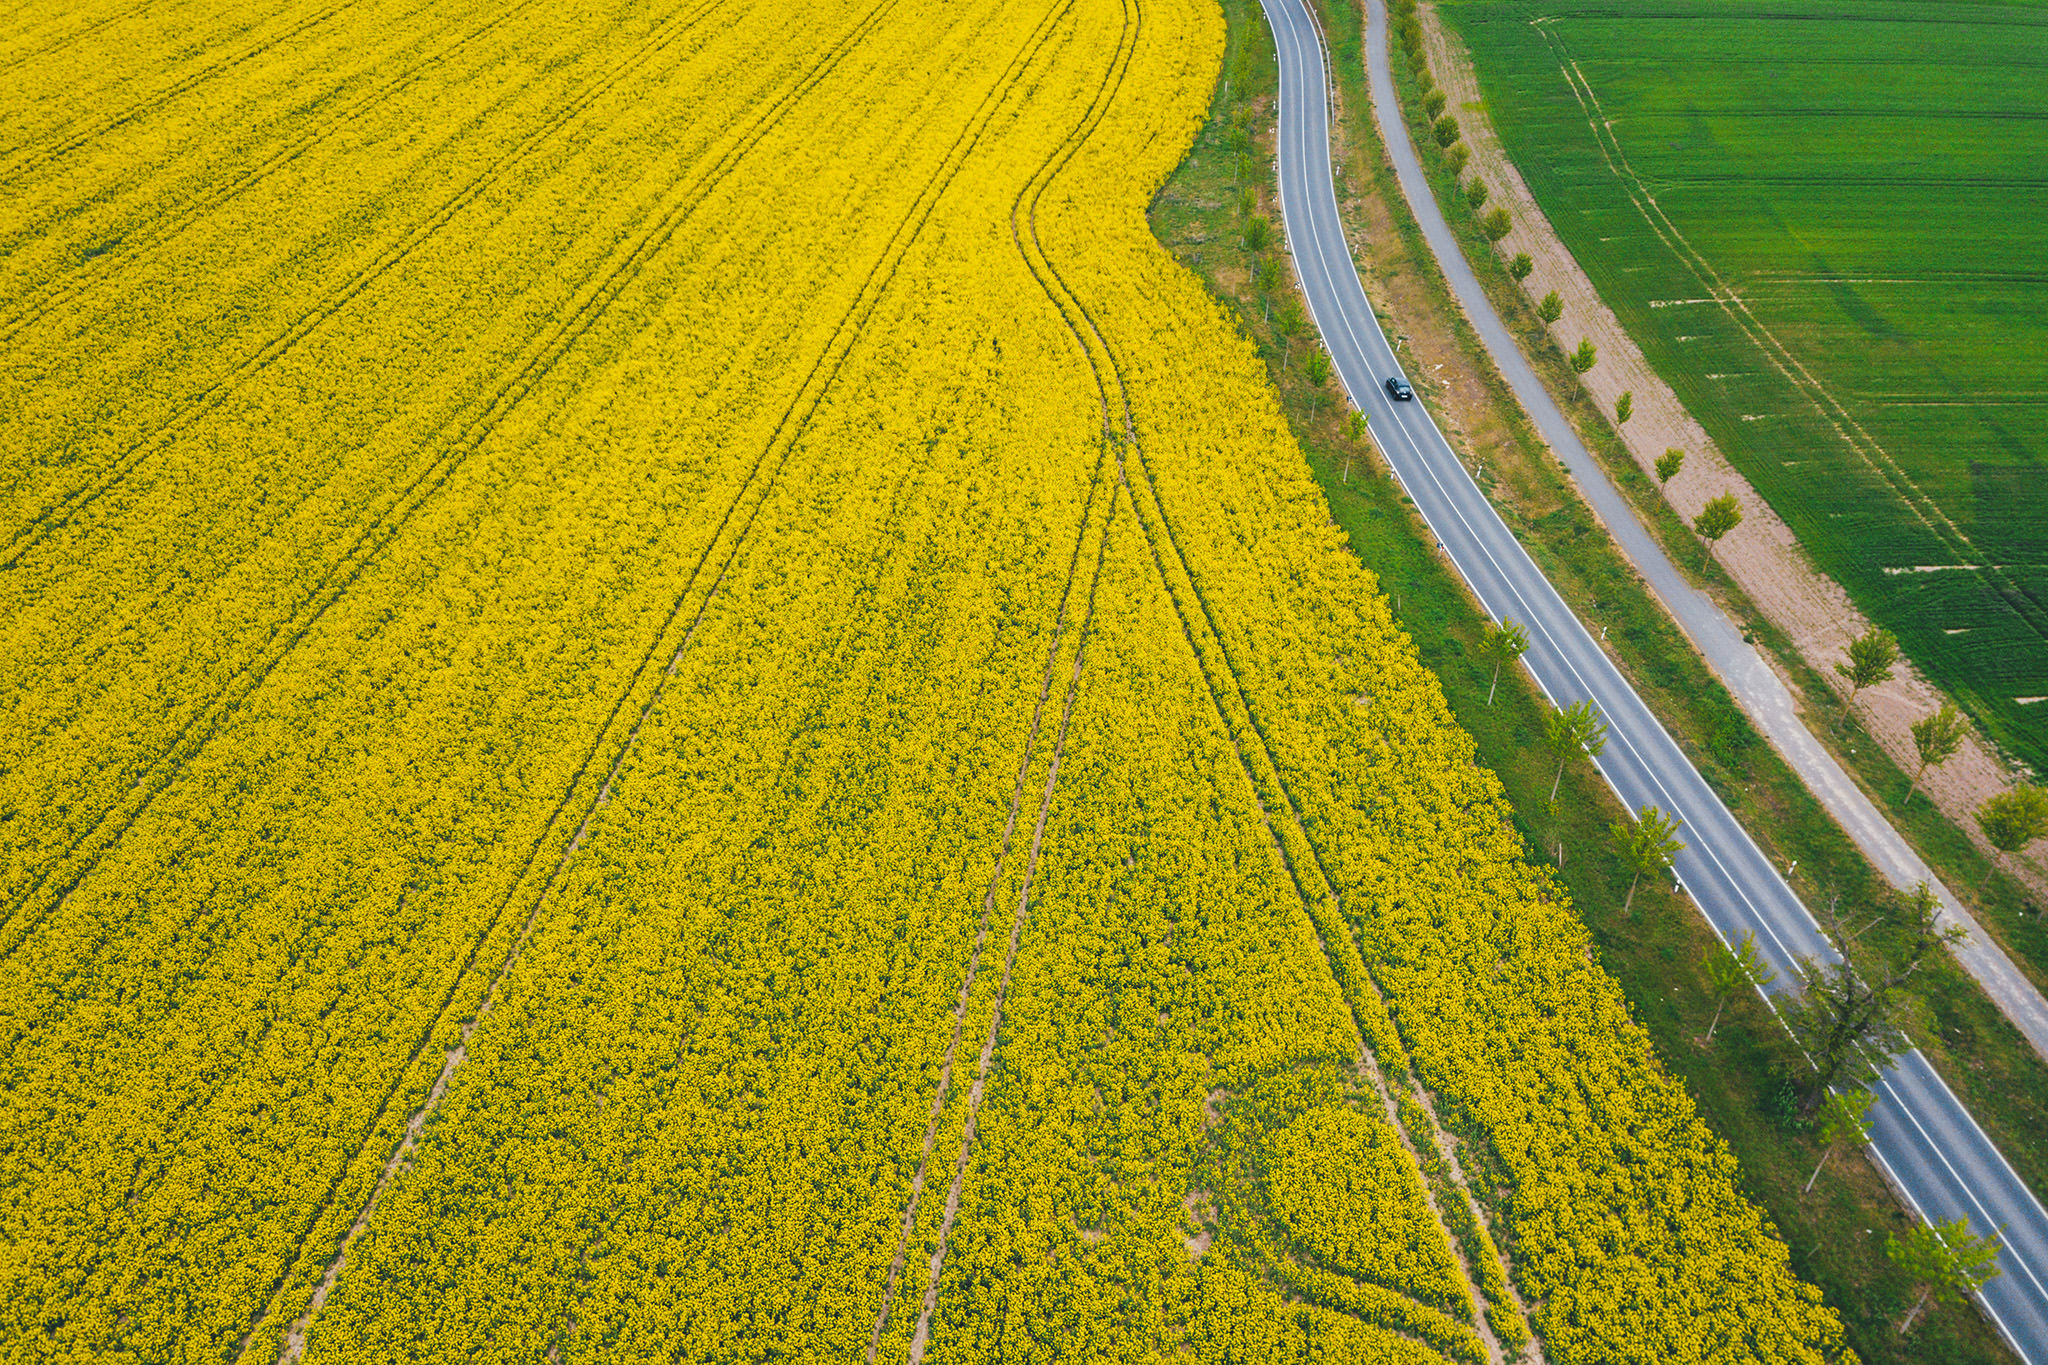 Road next to a large canola field